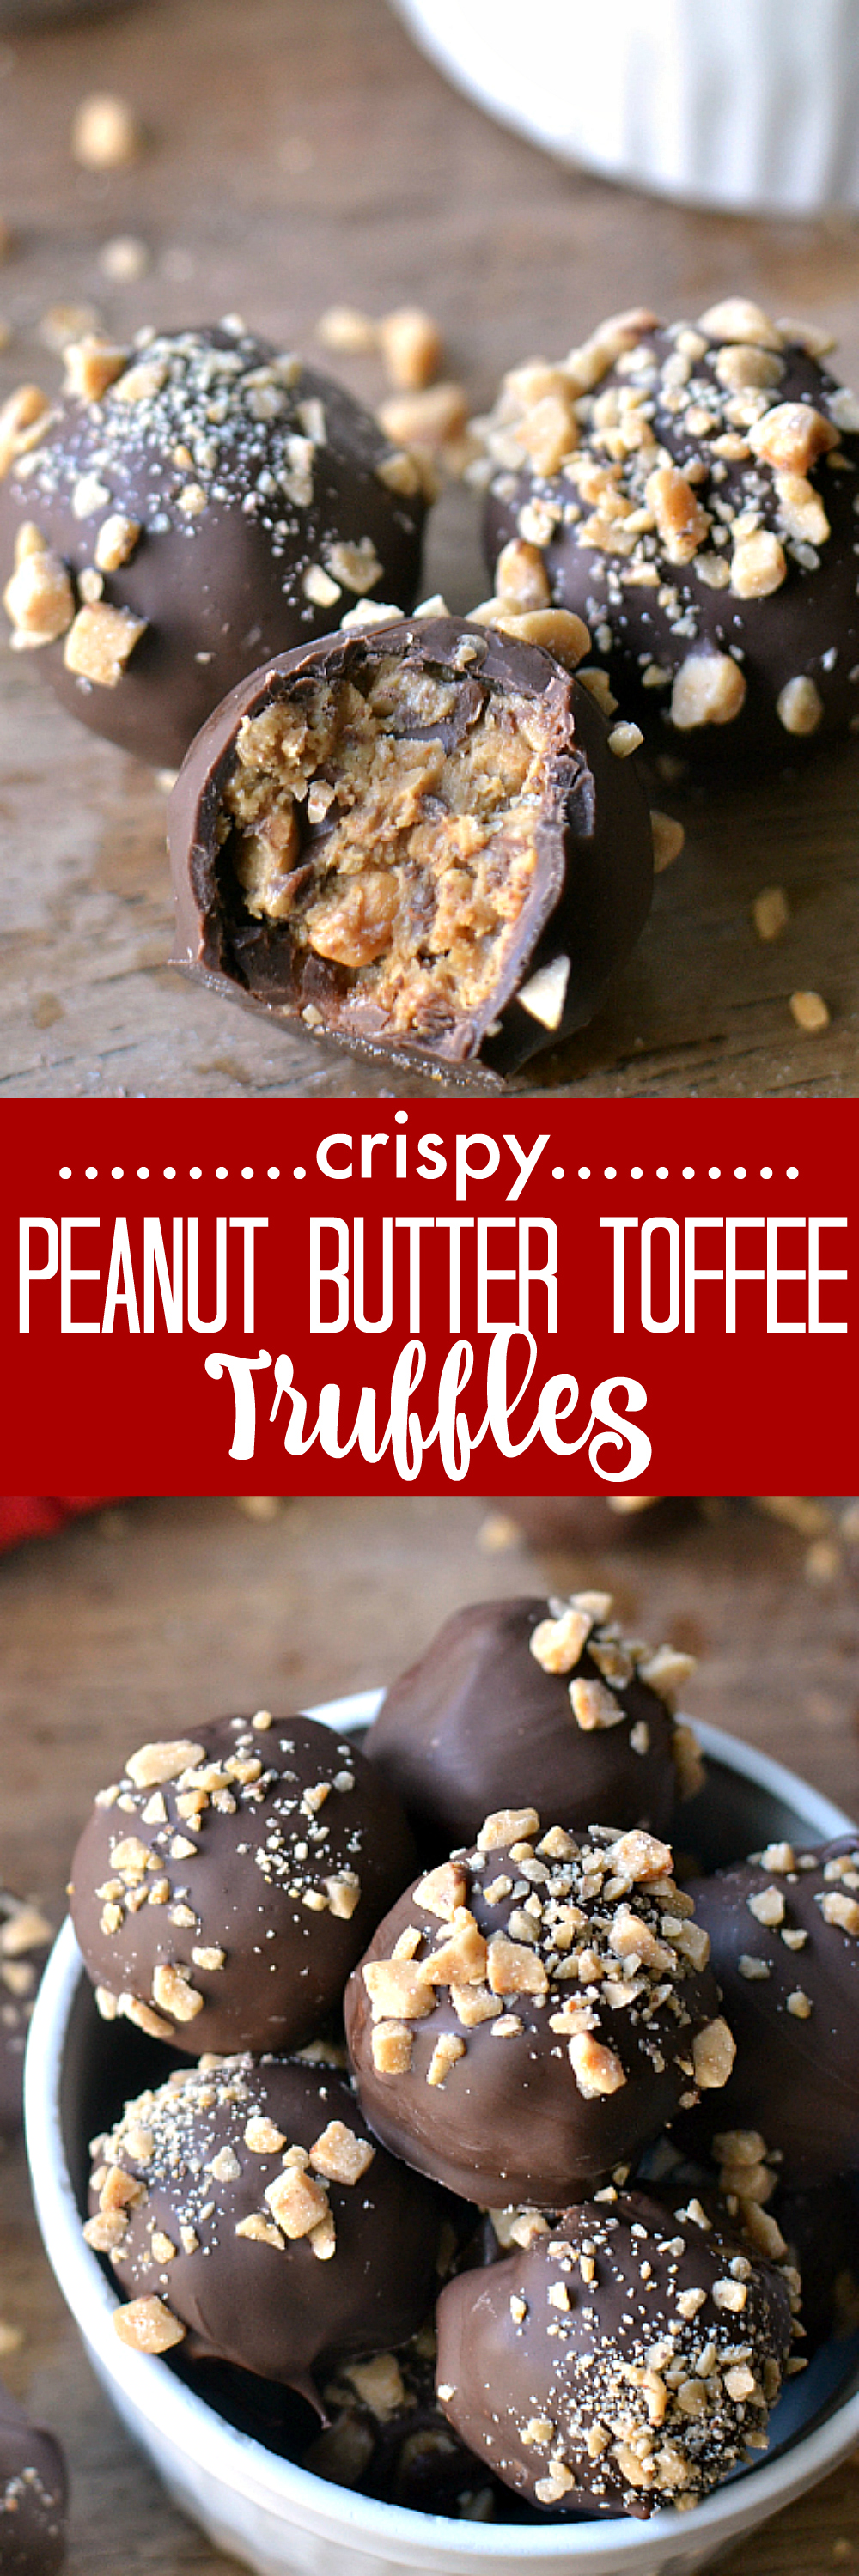 Crispy Peanut Butter Toffee Truffles – these make the BEST gifts!